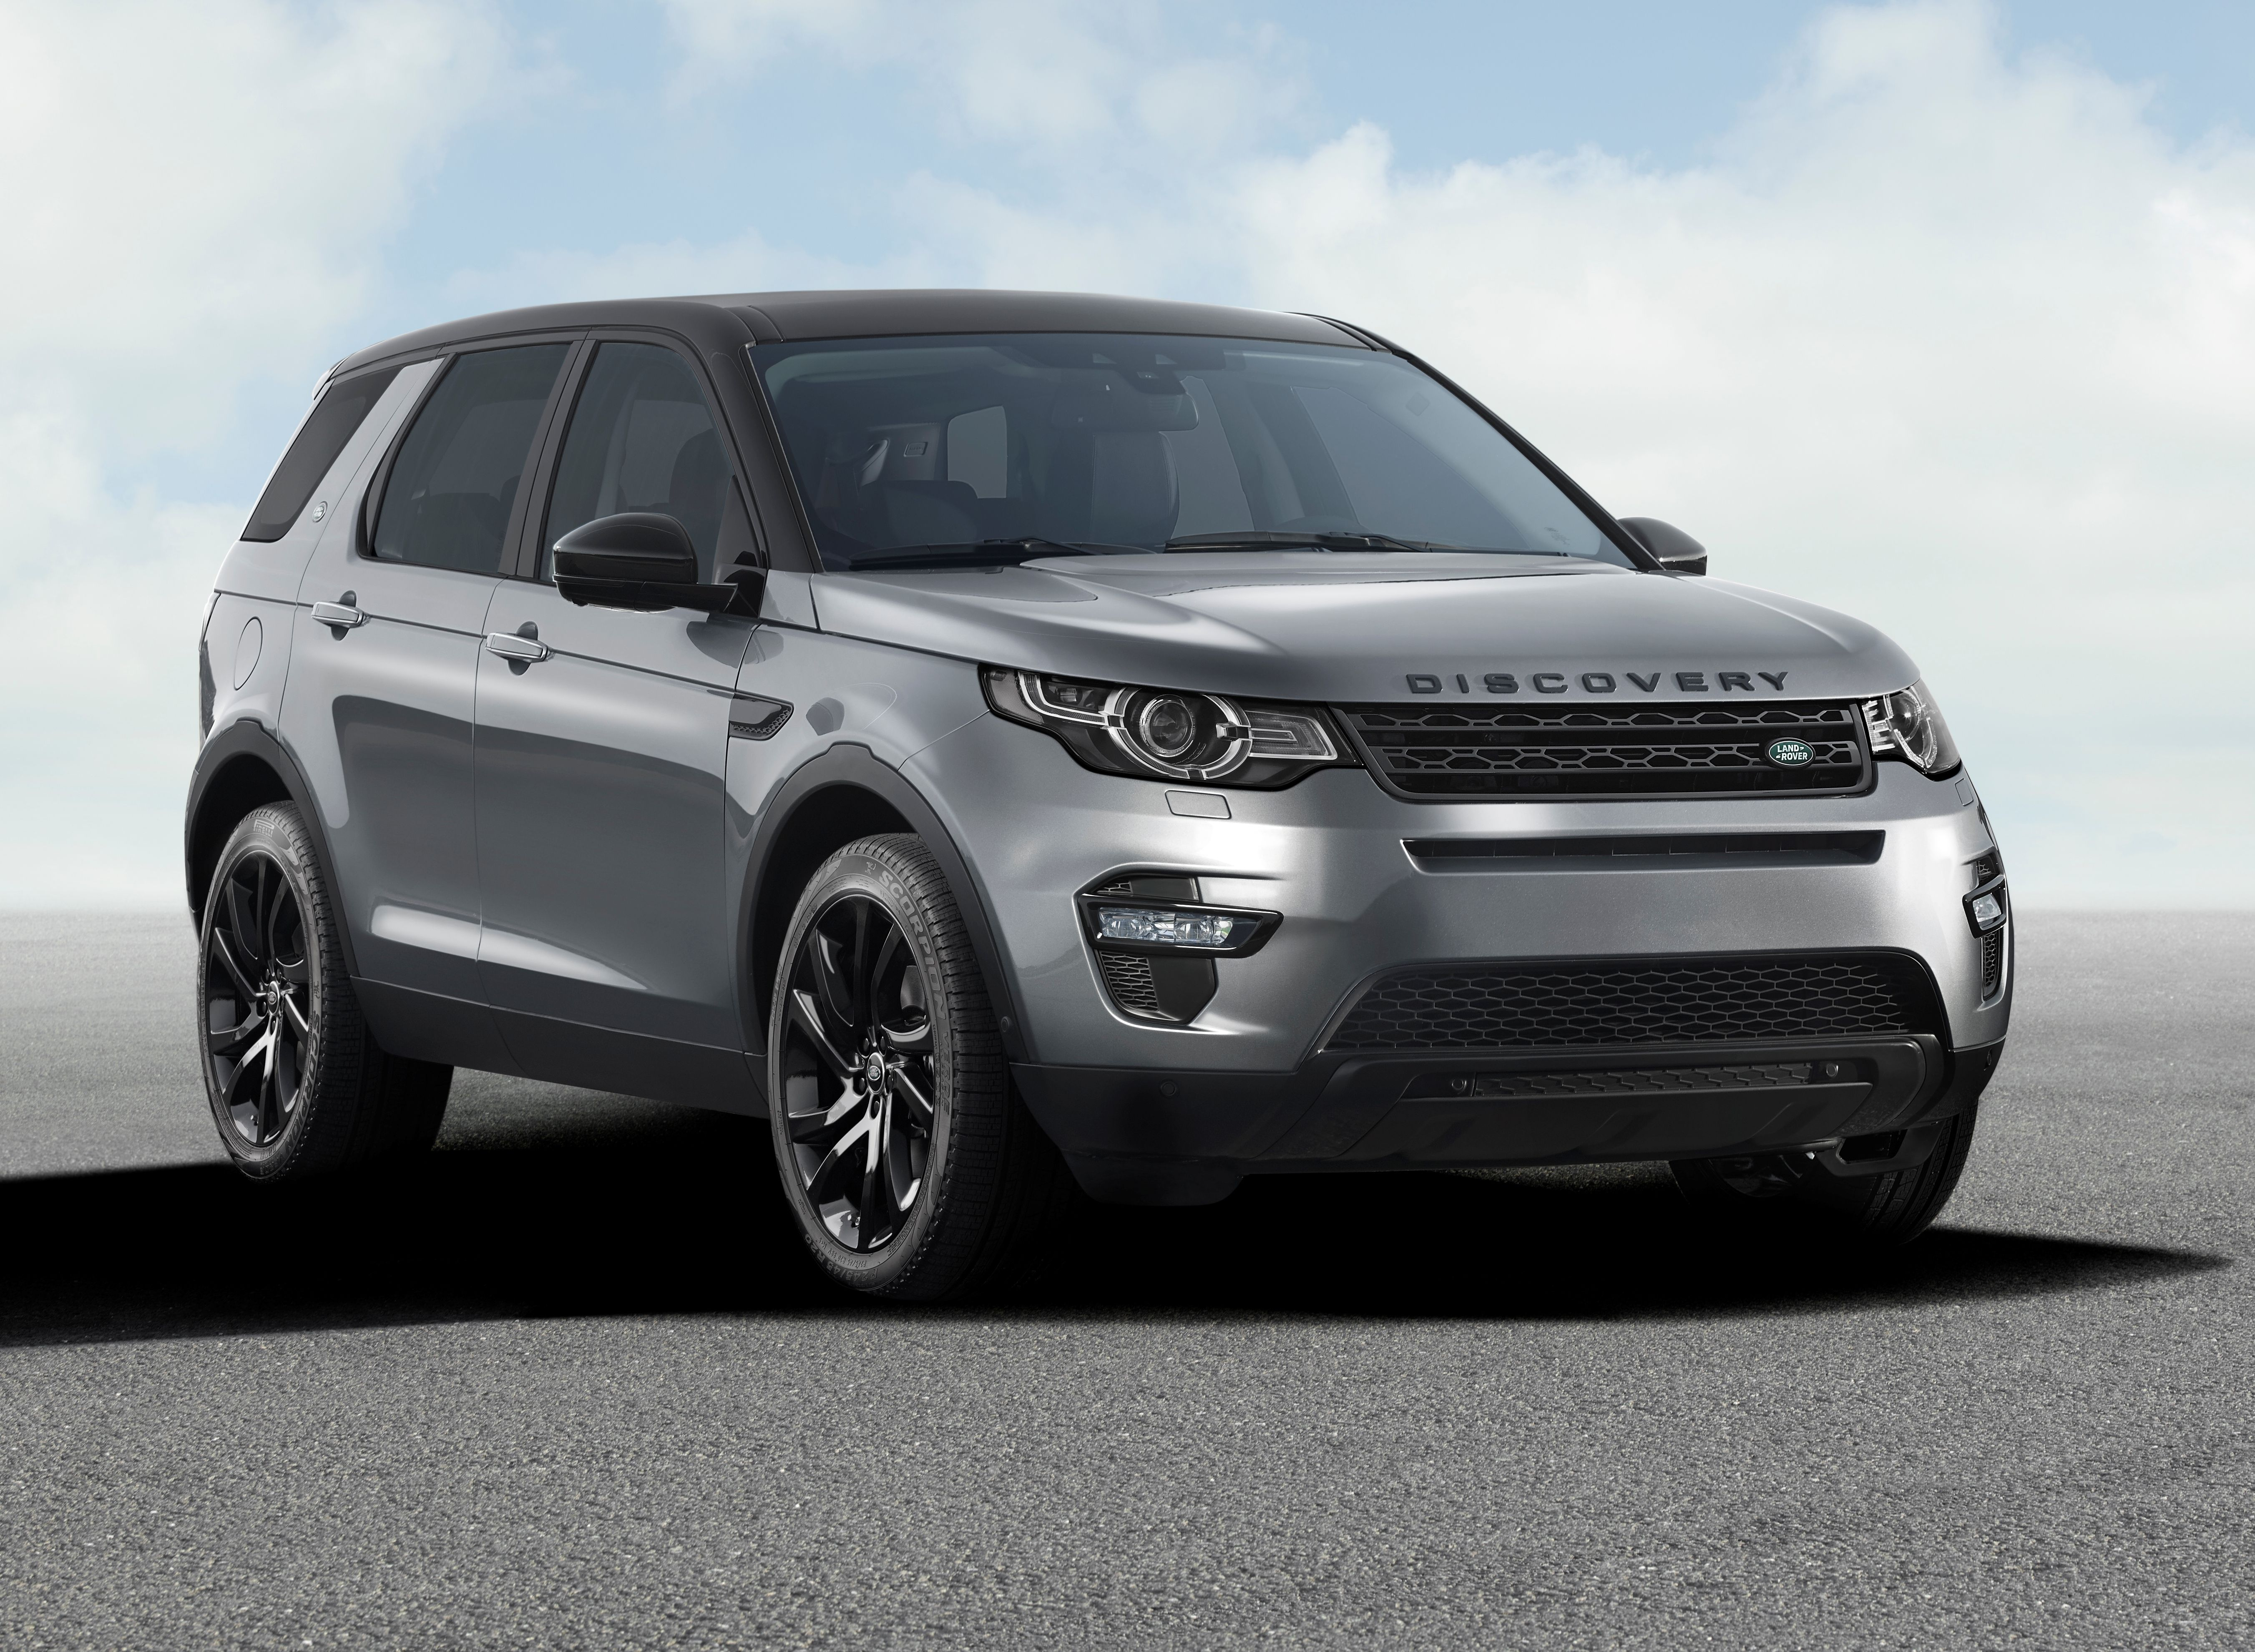 2016 land rover discovery 5 2016 land rover discovery 5 interior and exterior 2016 land rover discovery 5 engine 2016 land rover discovery 5 pri